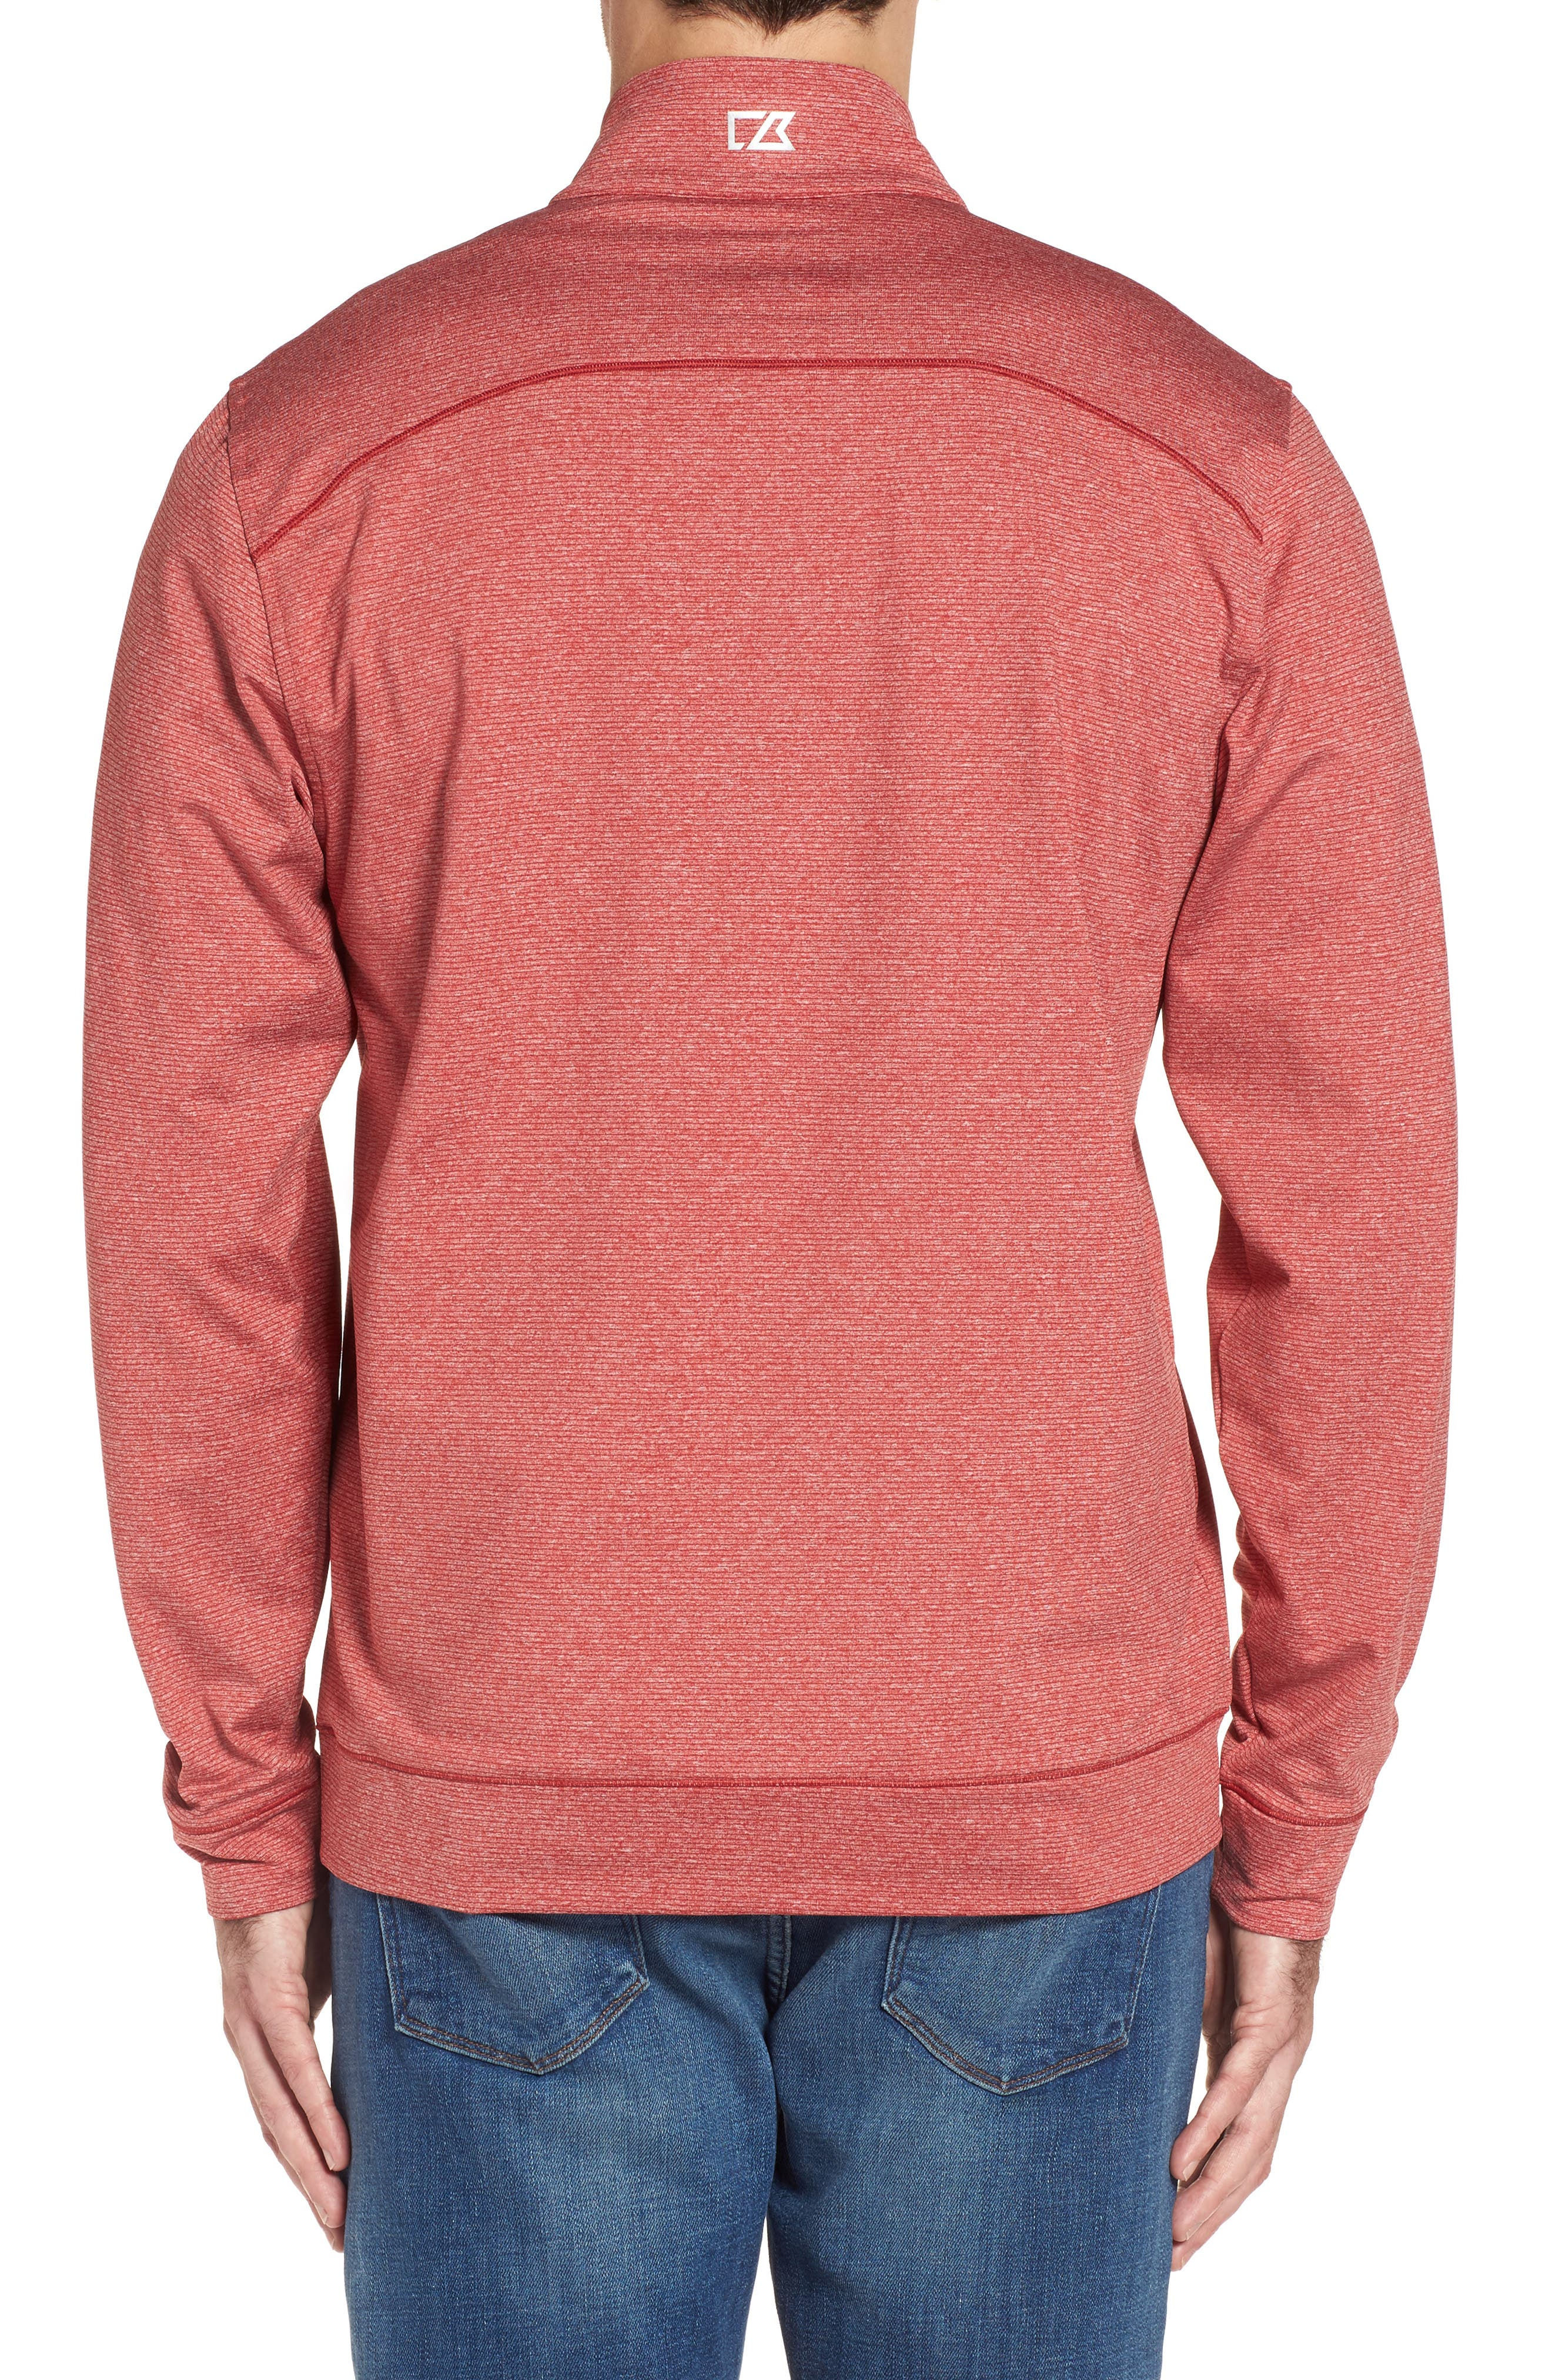 Shoreline - Tampa Bay Buccaneers Half Zip Pullover,                             Alternate thumbnail 2, color,